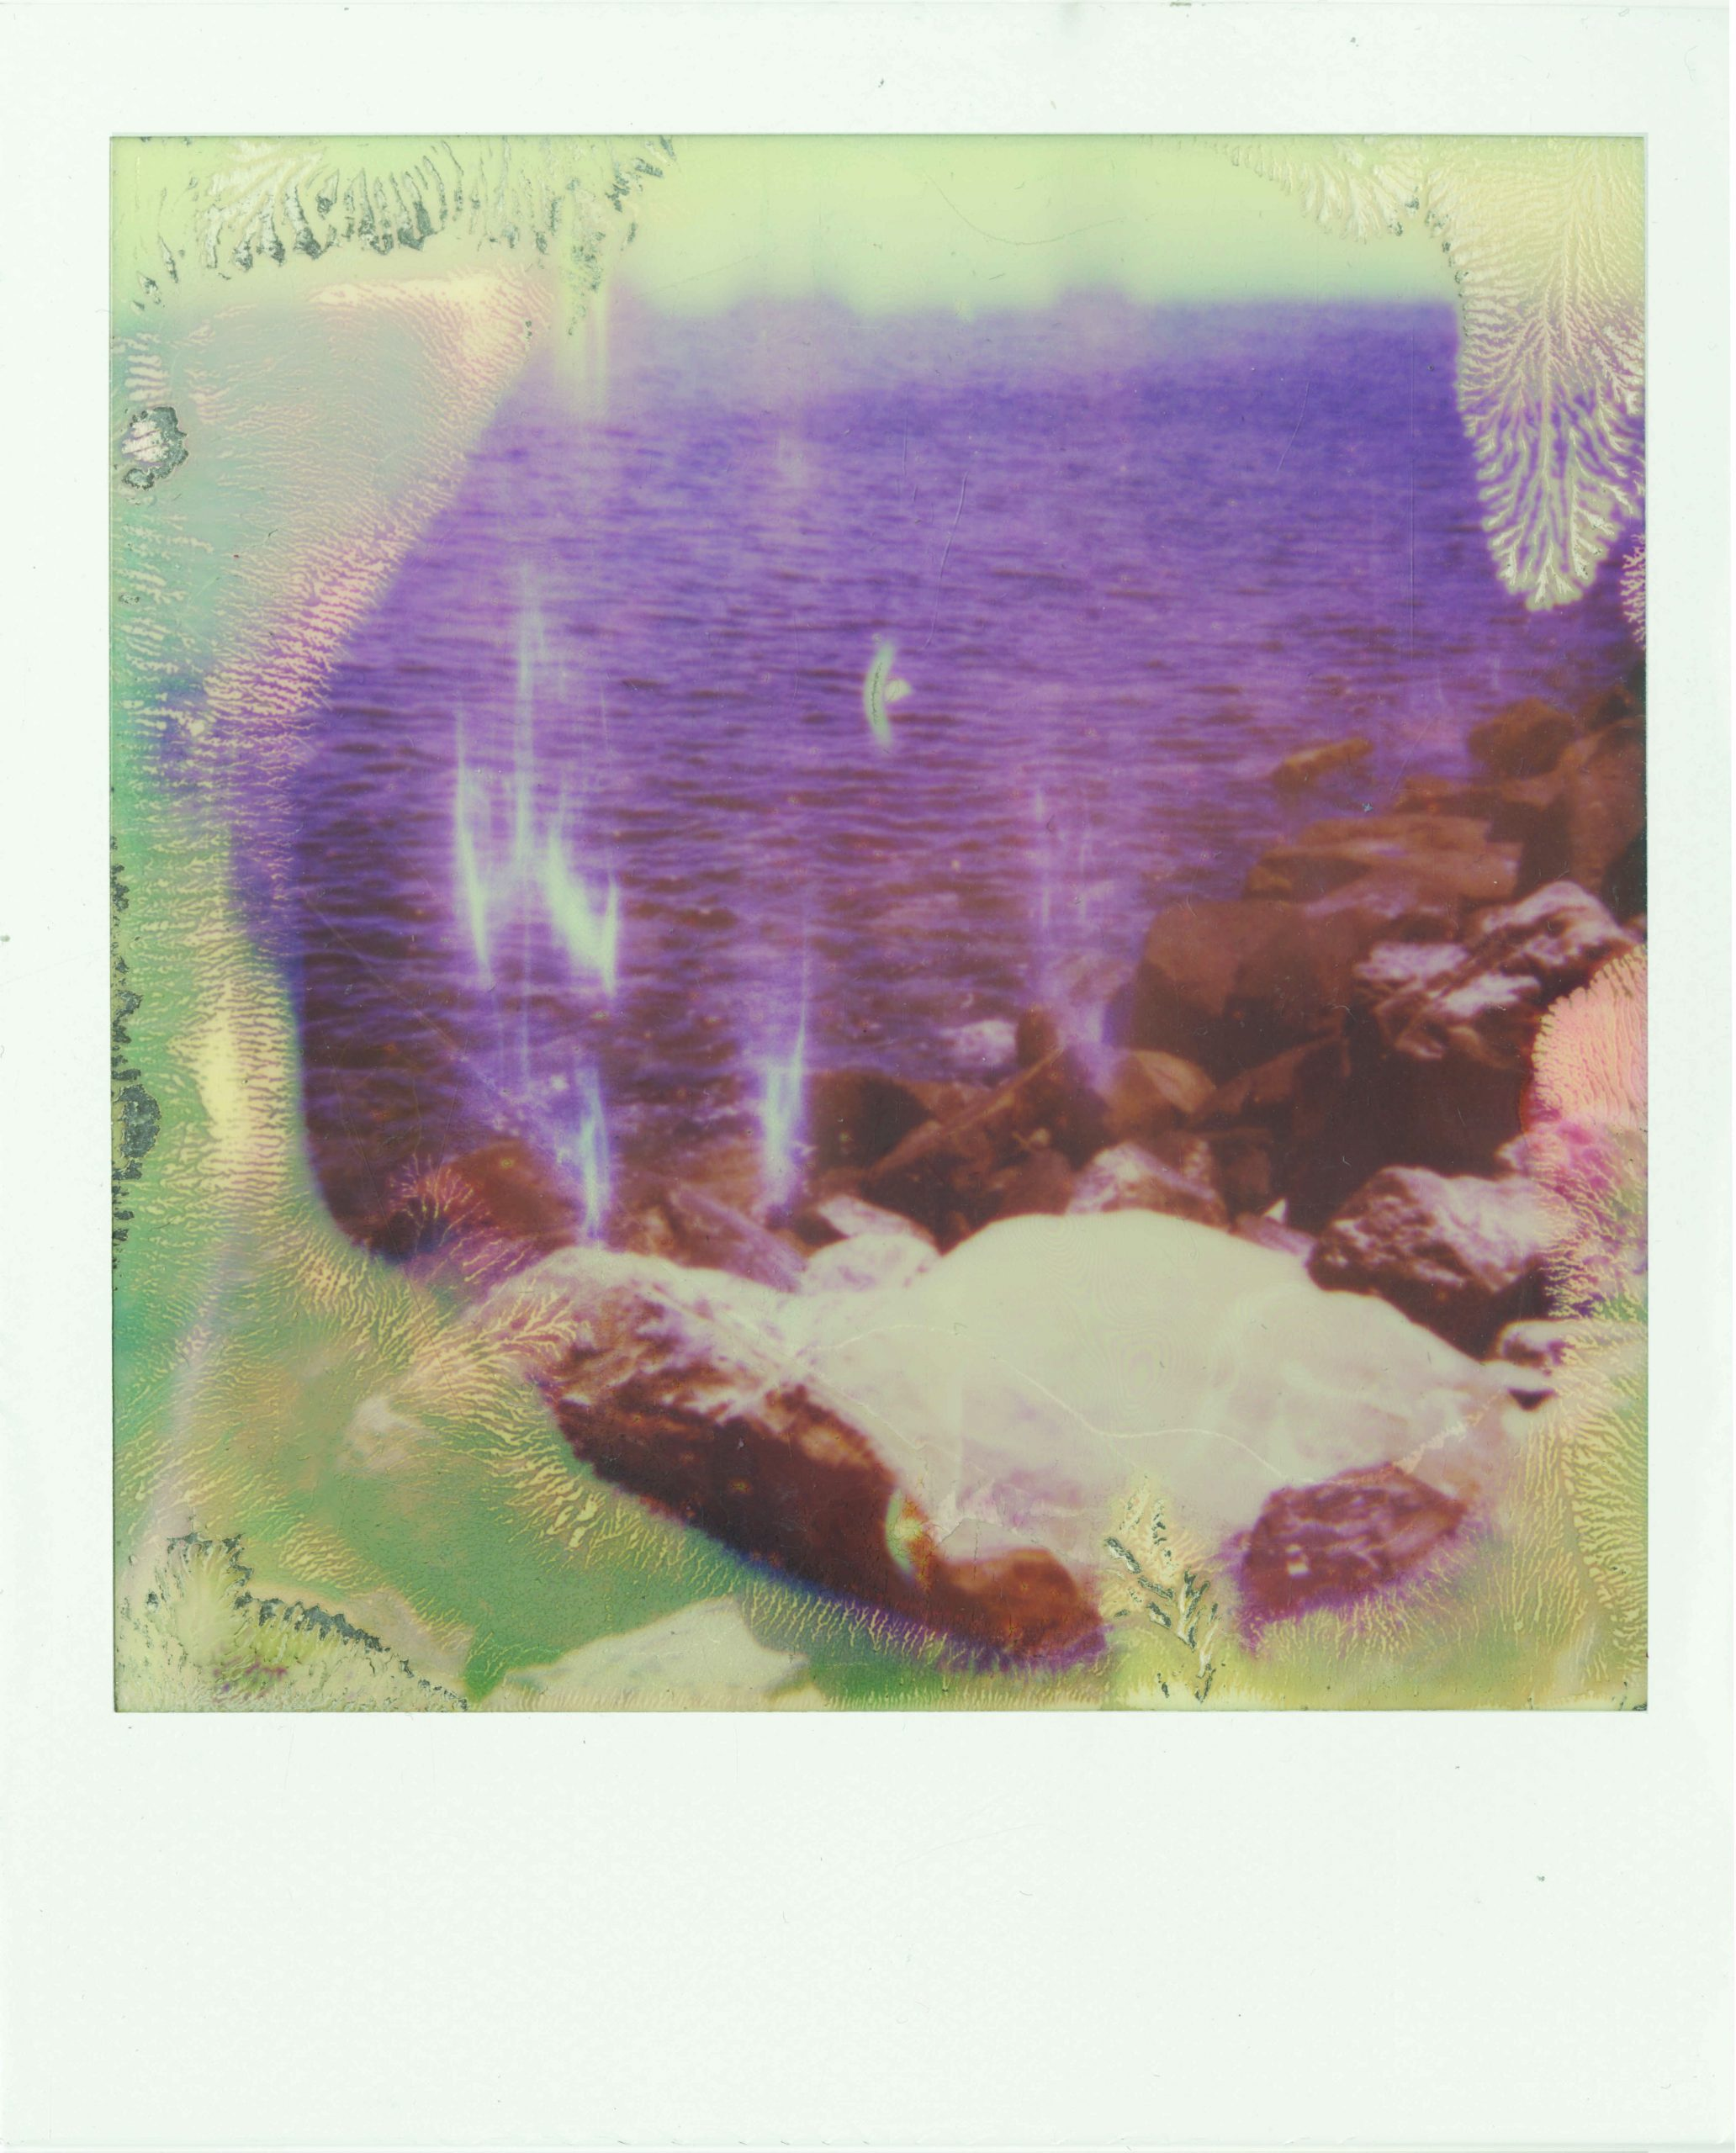 Untitled, Tarifa #3, 2019, Polaroid, 4.25 x 3.5inches